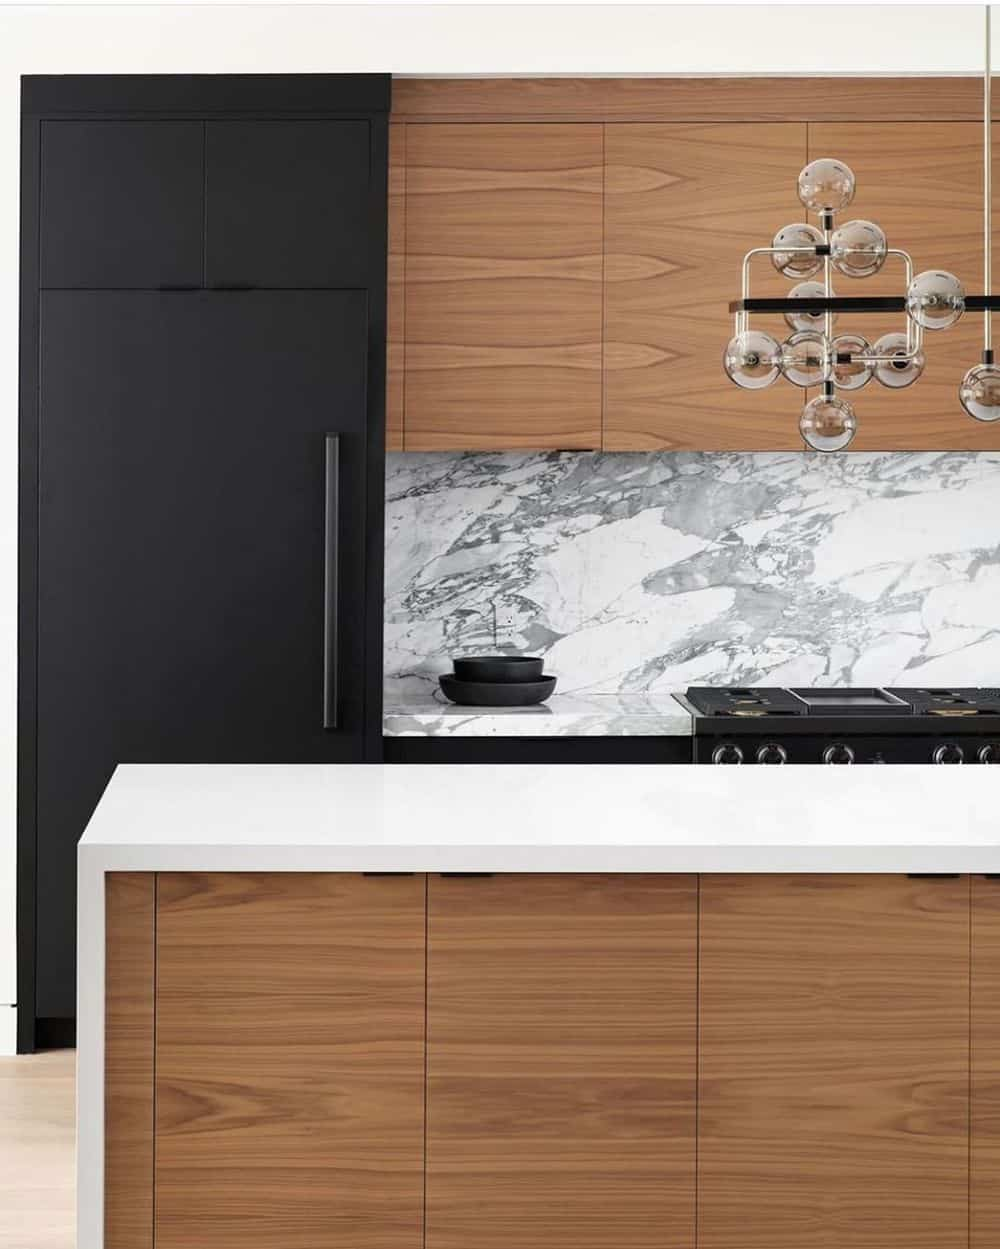 Timeless Kitchen Designs You Will Fall in Love With - Wooden Cabinets